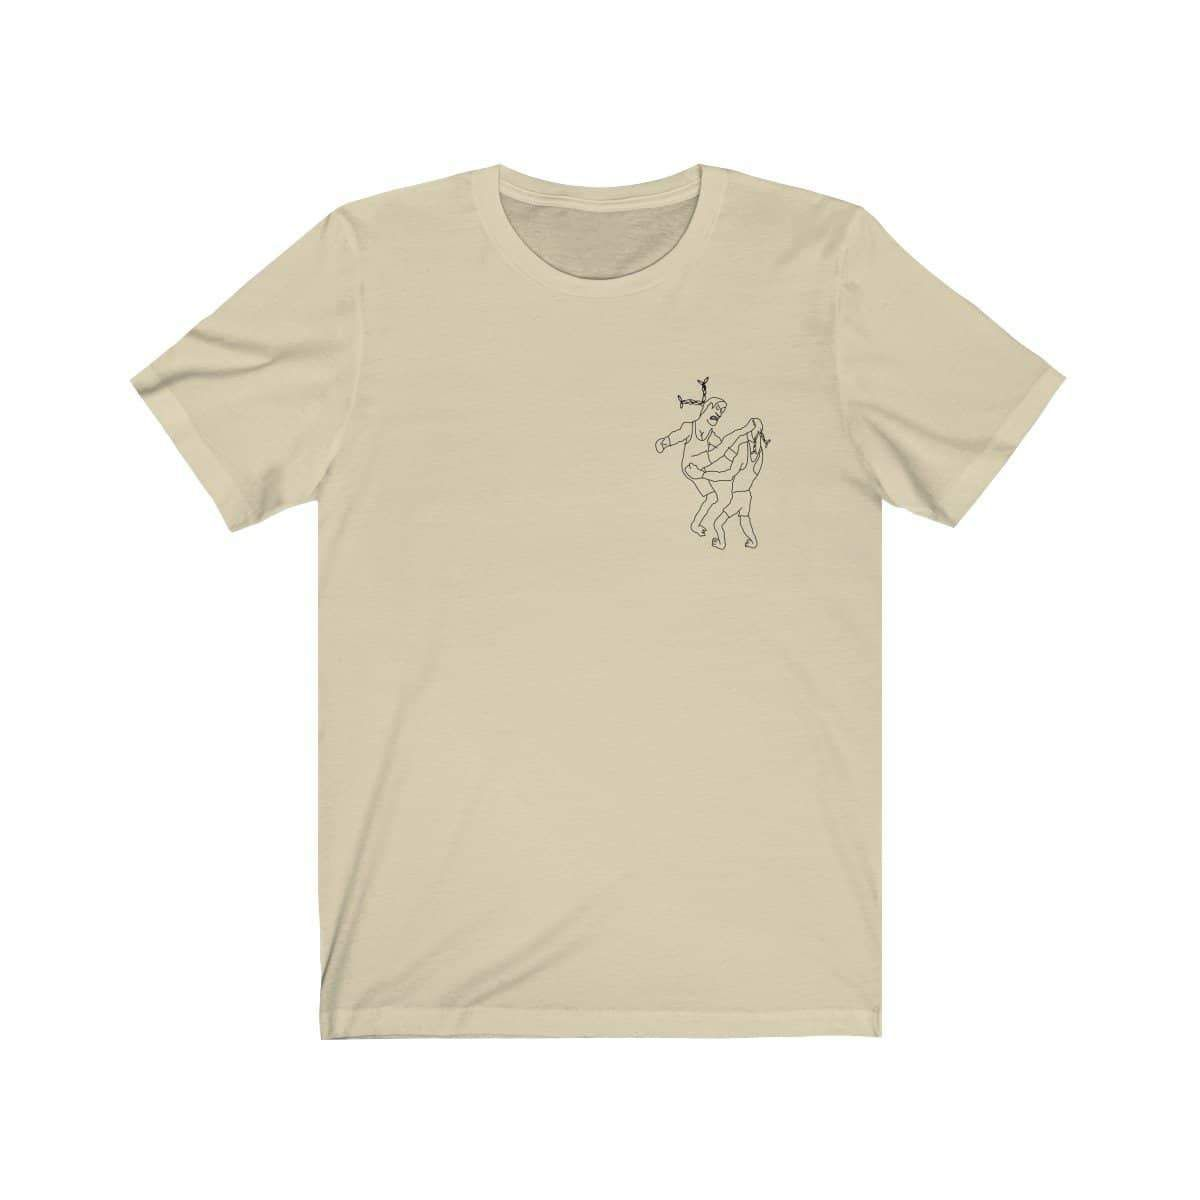 Limited Edition 100% cottonunisex t shirtby Tattoo artistAutoChrist !  Free Shipping Topqualityprint - Made in USA  This updated unisex essential fits like a well-loved favorite. Super soft cotton and excellent quality print .  .: Retail fit .: 100% Soft cotton .: Light fabric (4.2 oz/yd² (142 g/m²)) .: Tear away label .: Runs true to size     XS S M L XL 2XL 3XL     Width, in 17 18 20 23 25 26 28   Length, in 28 28 30 30 32 33 33   Sleeve length, in 9 9